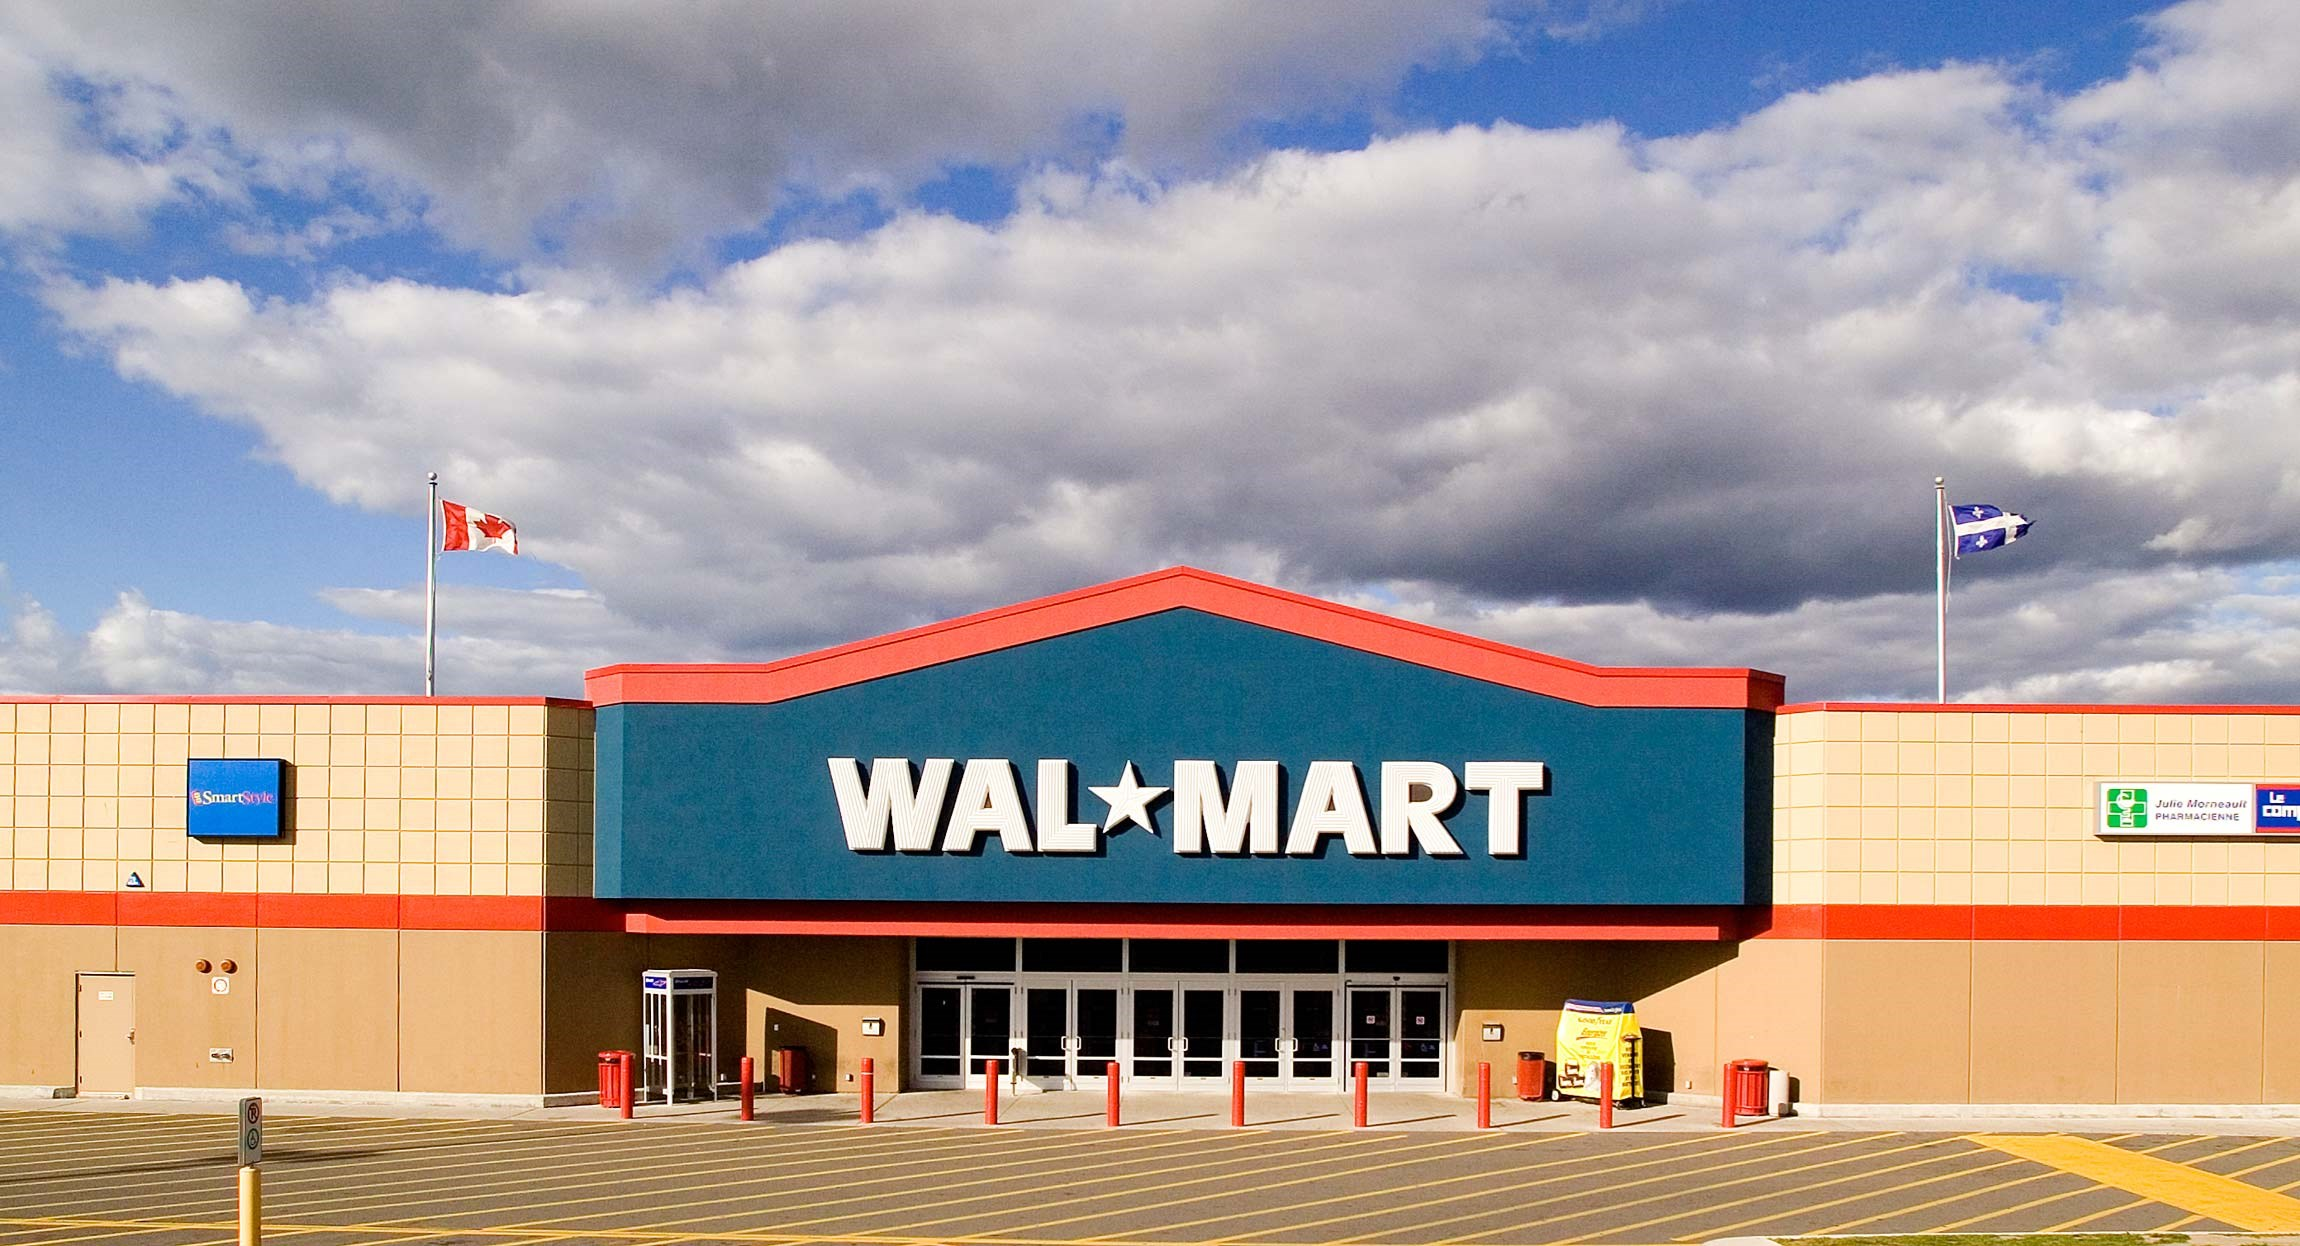 """karen olsson's up against wal mart John edwards engl 1013 composition 1 4/28/2012 argumentative synthesis """"up against wal-mart"""" """"progressive wal-mart really"""" profiting an average of 18 million every hour, managing 22 million employees in over 11,000 stores in 27 countries, according to fortune global 500 list in 2014 wal-mart is the worlds largest company by revenue."""